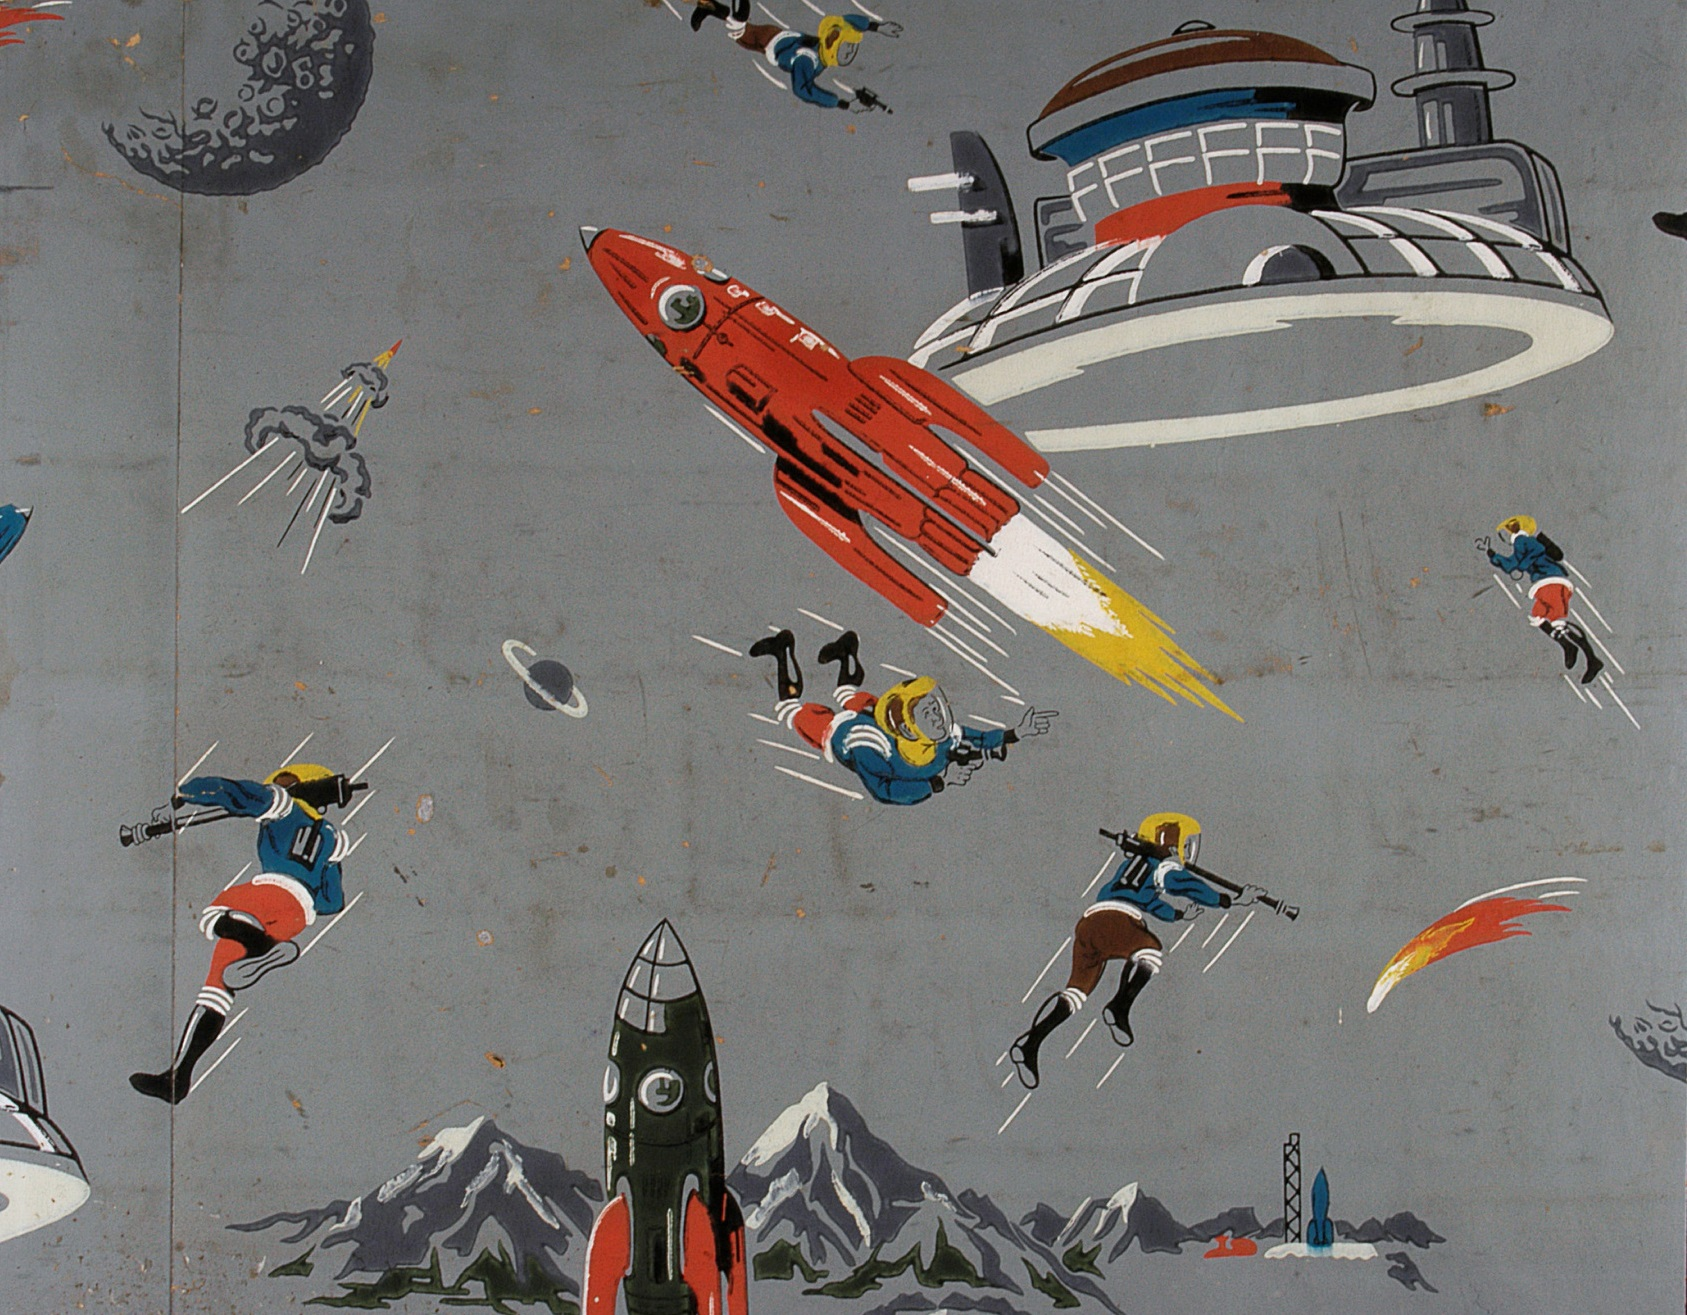 Whimsical wallpaper of space travel from the 1950s